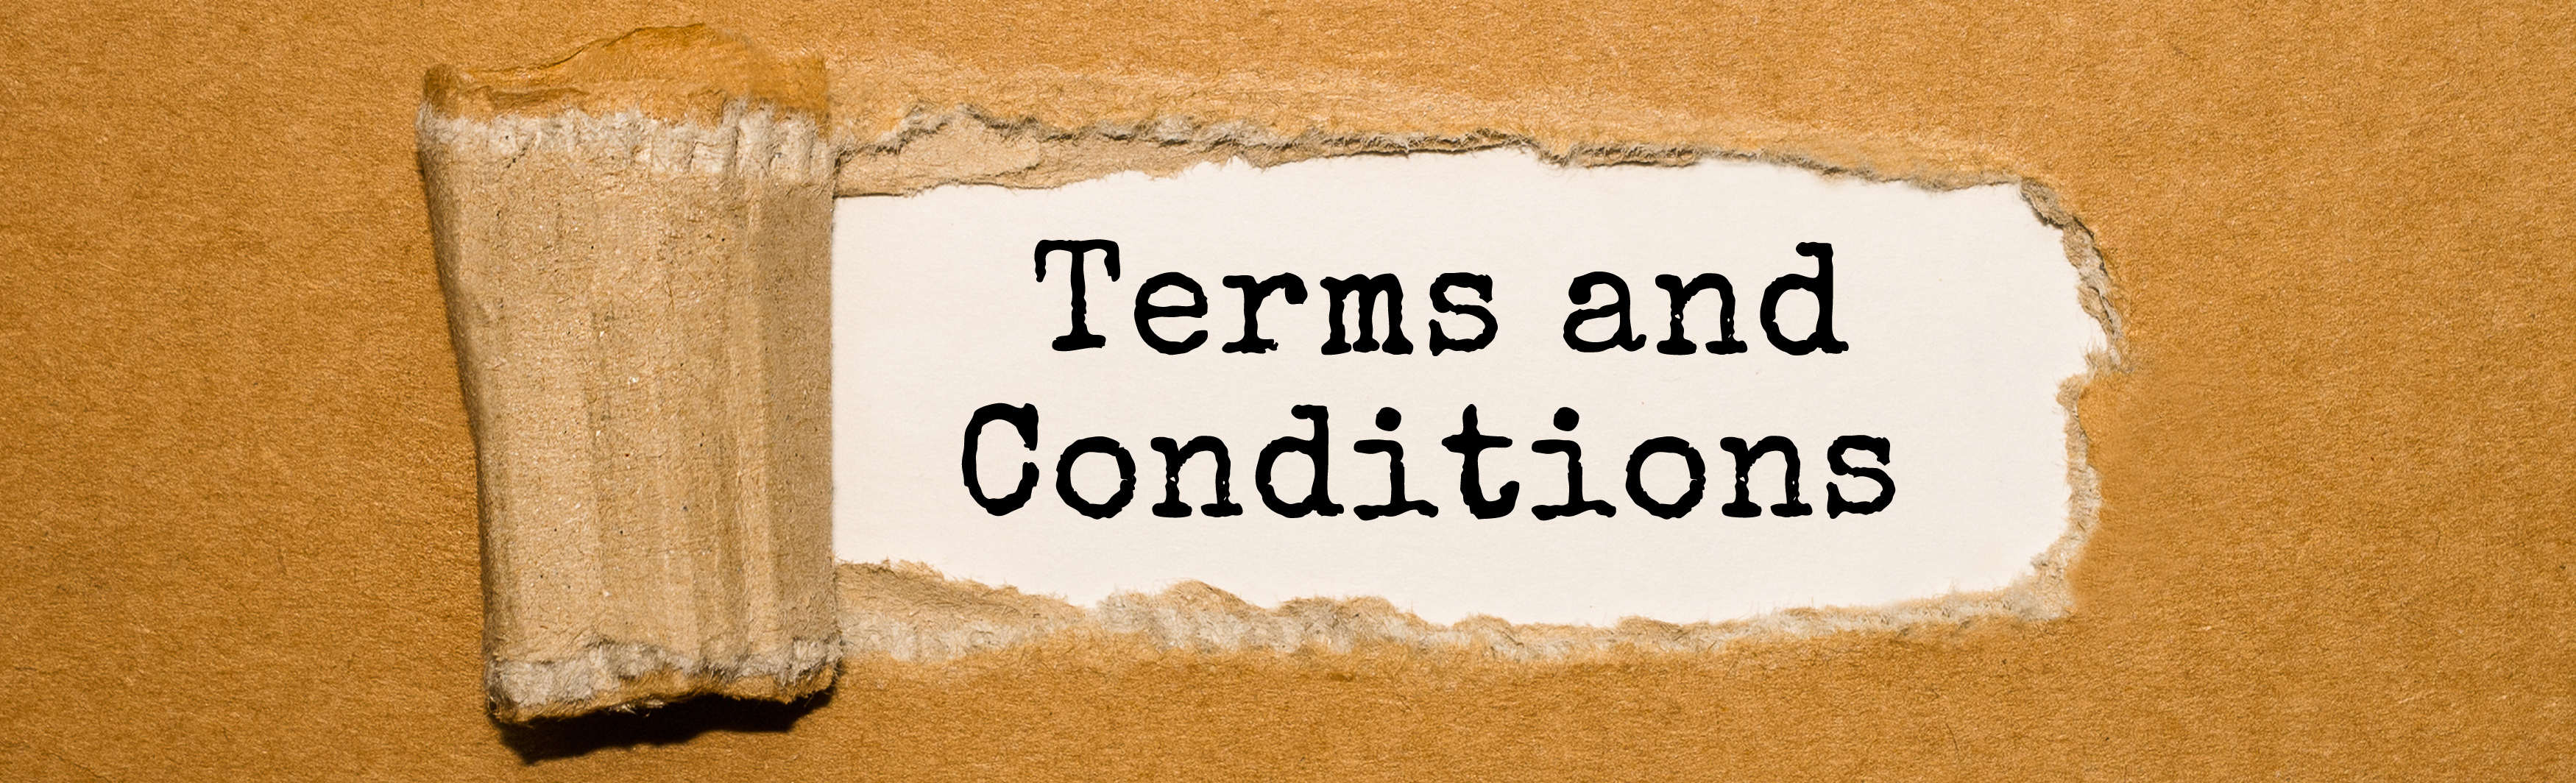 image showing terms and conditions